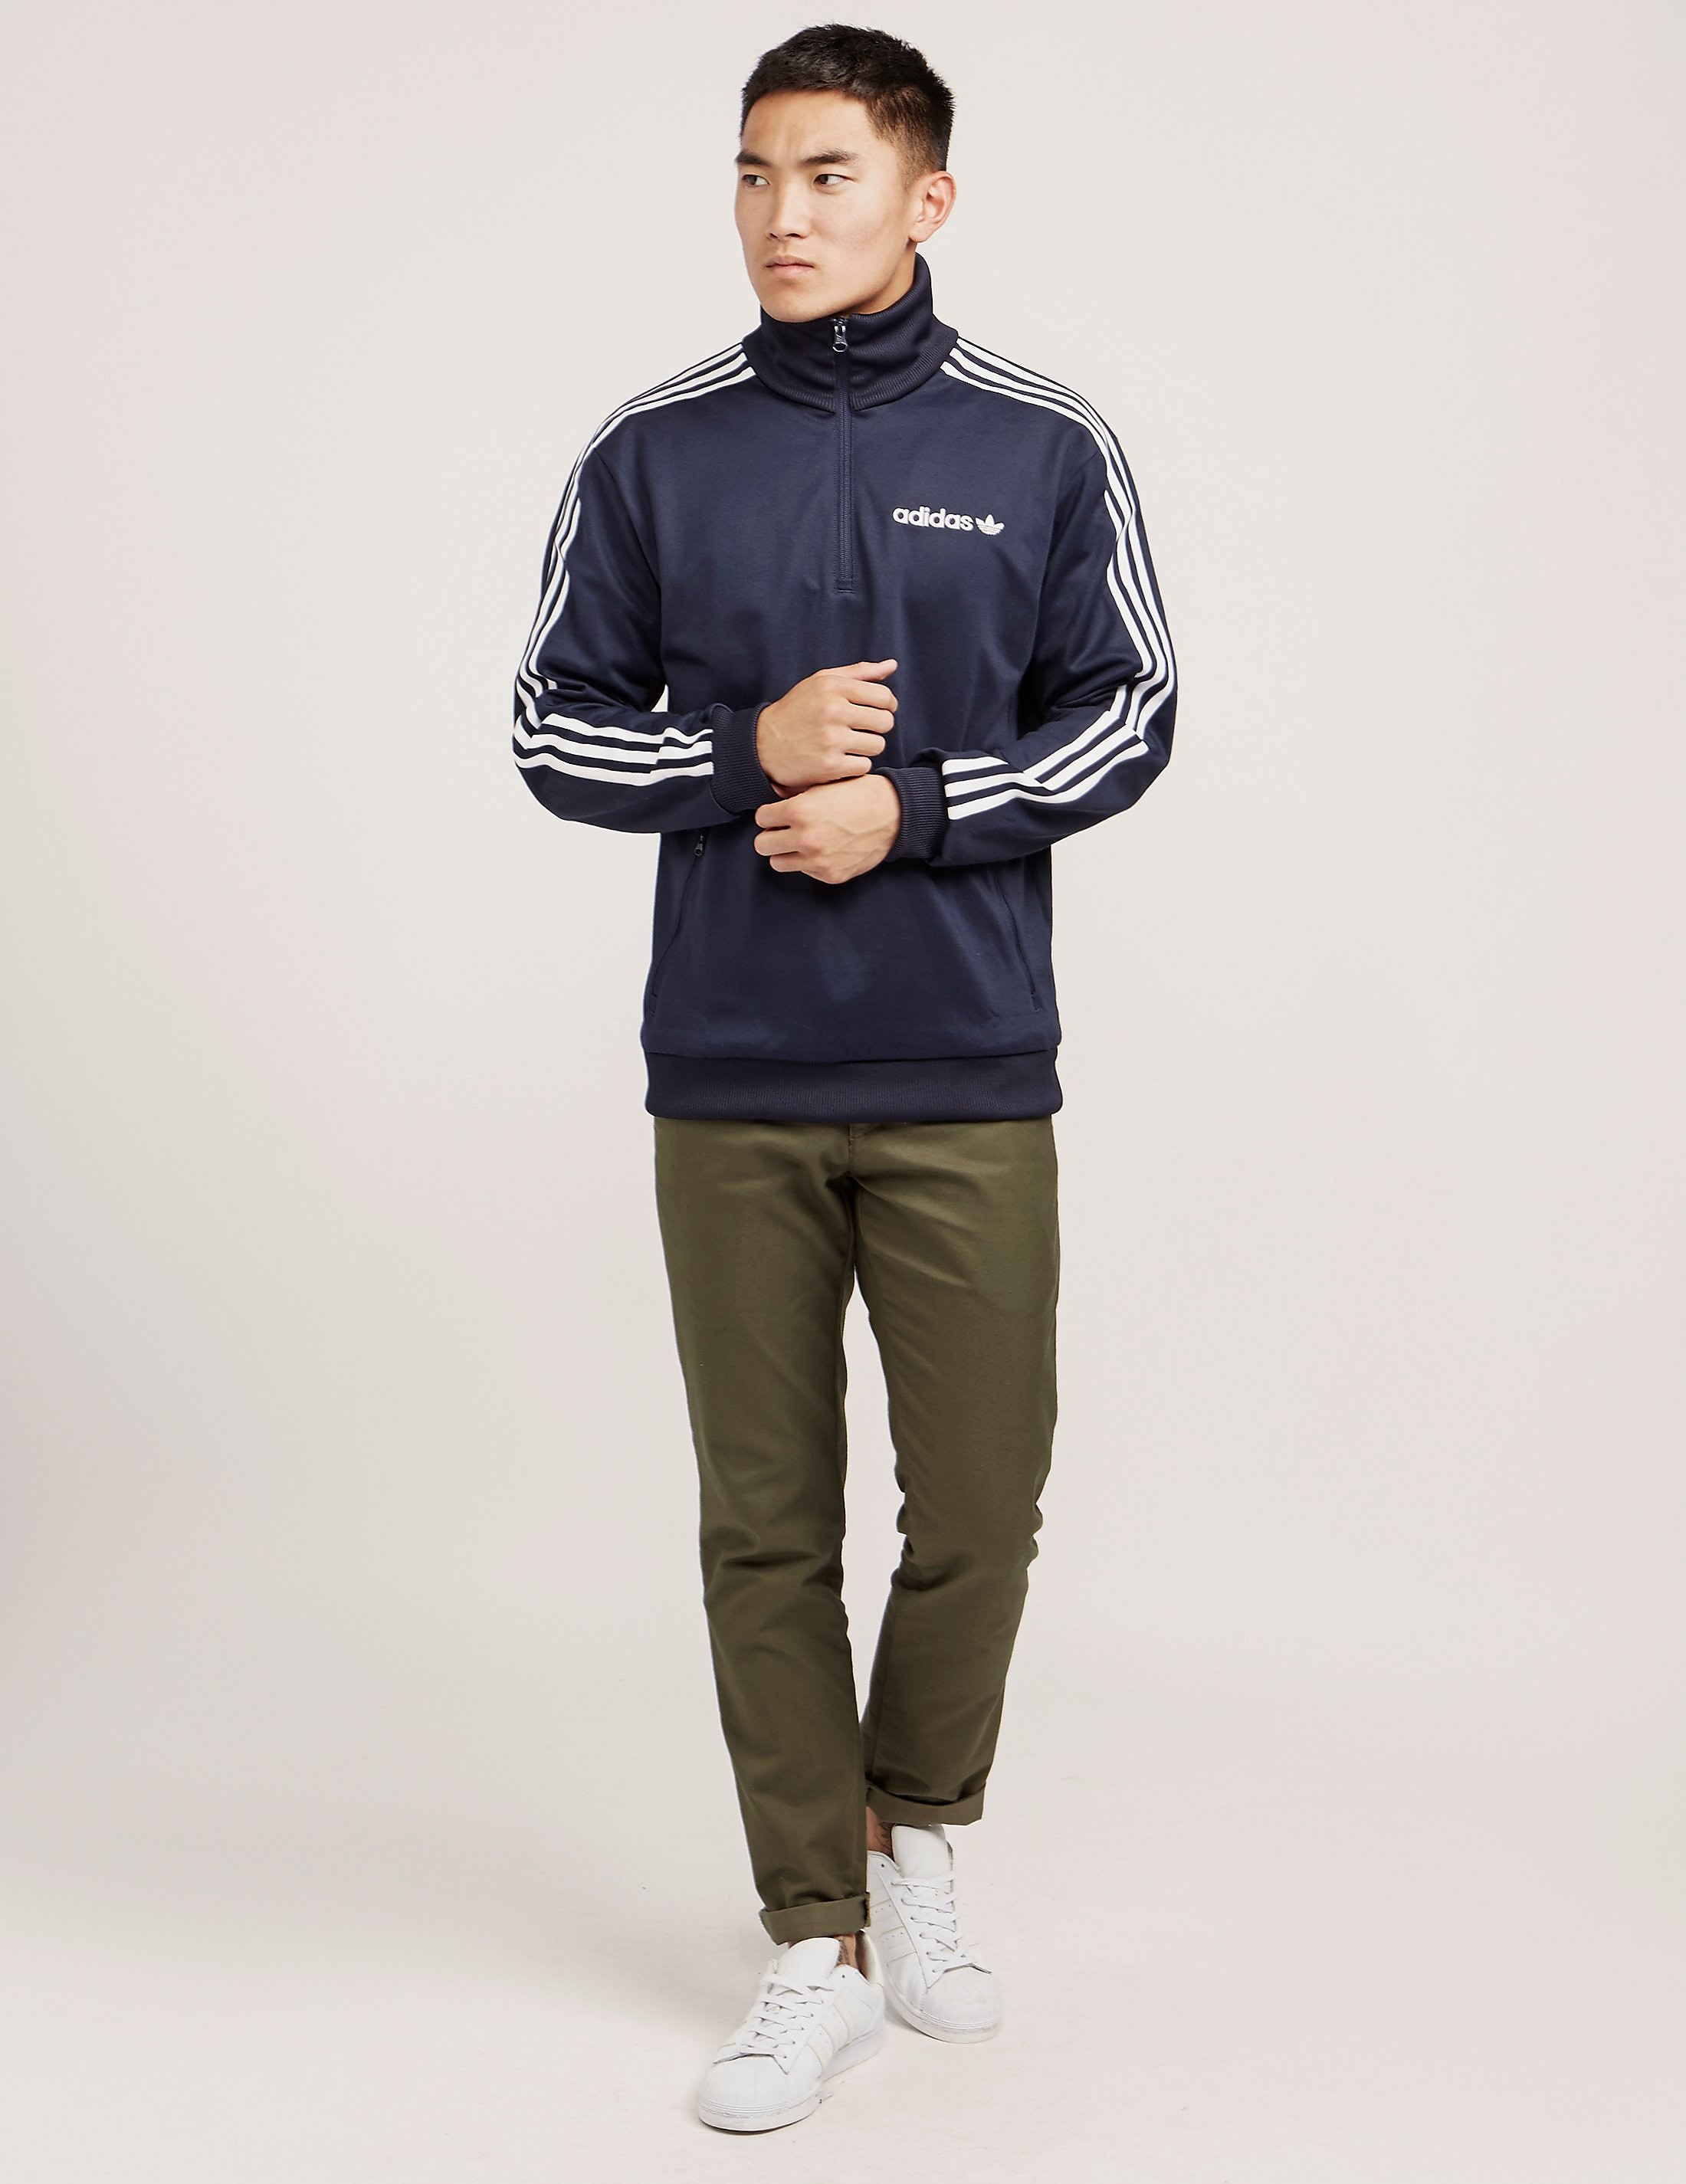 adidas Originals Minoh Half Zip Sweatshirt